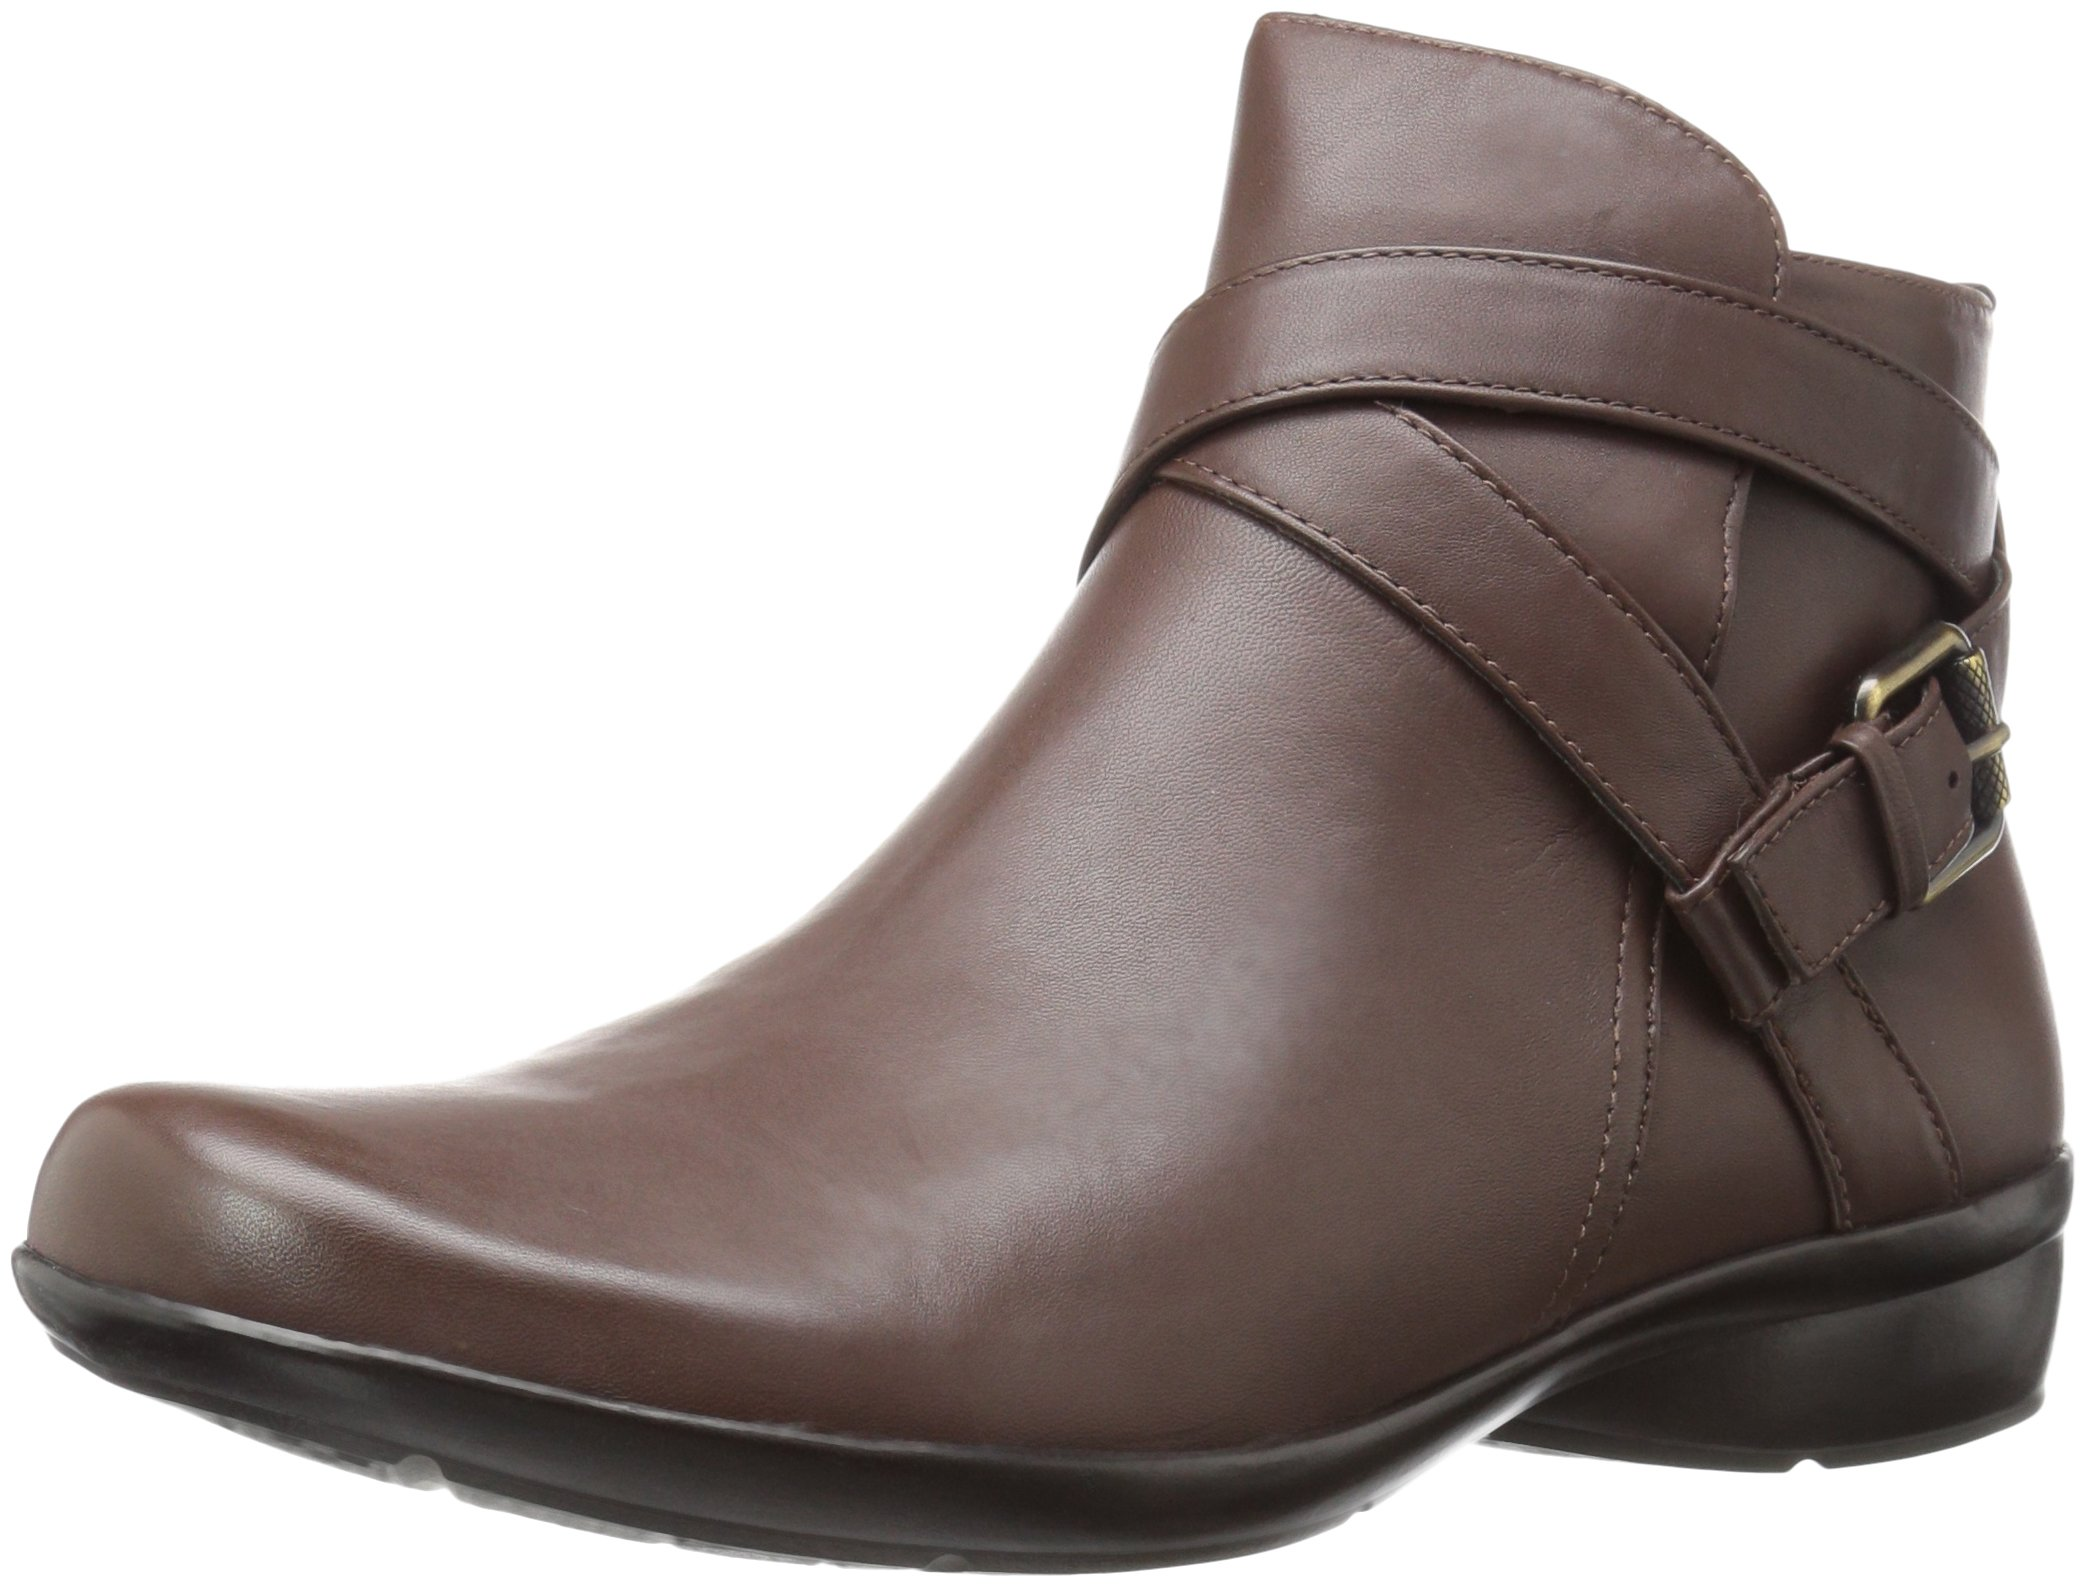 Naturalizer Women's Cassandra Ankle Bootie, Brown, 9.5 2W US by Naturalizer (Image #1)